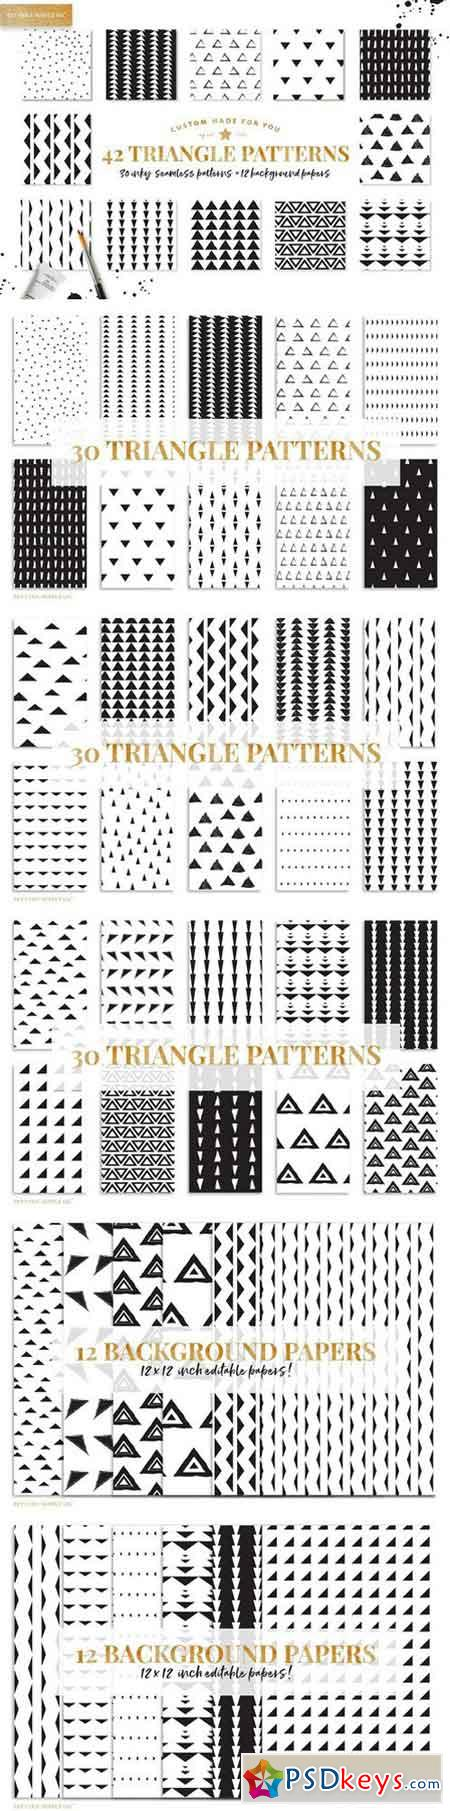 Triangle Patterns! 1450247